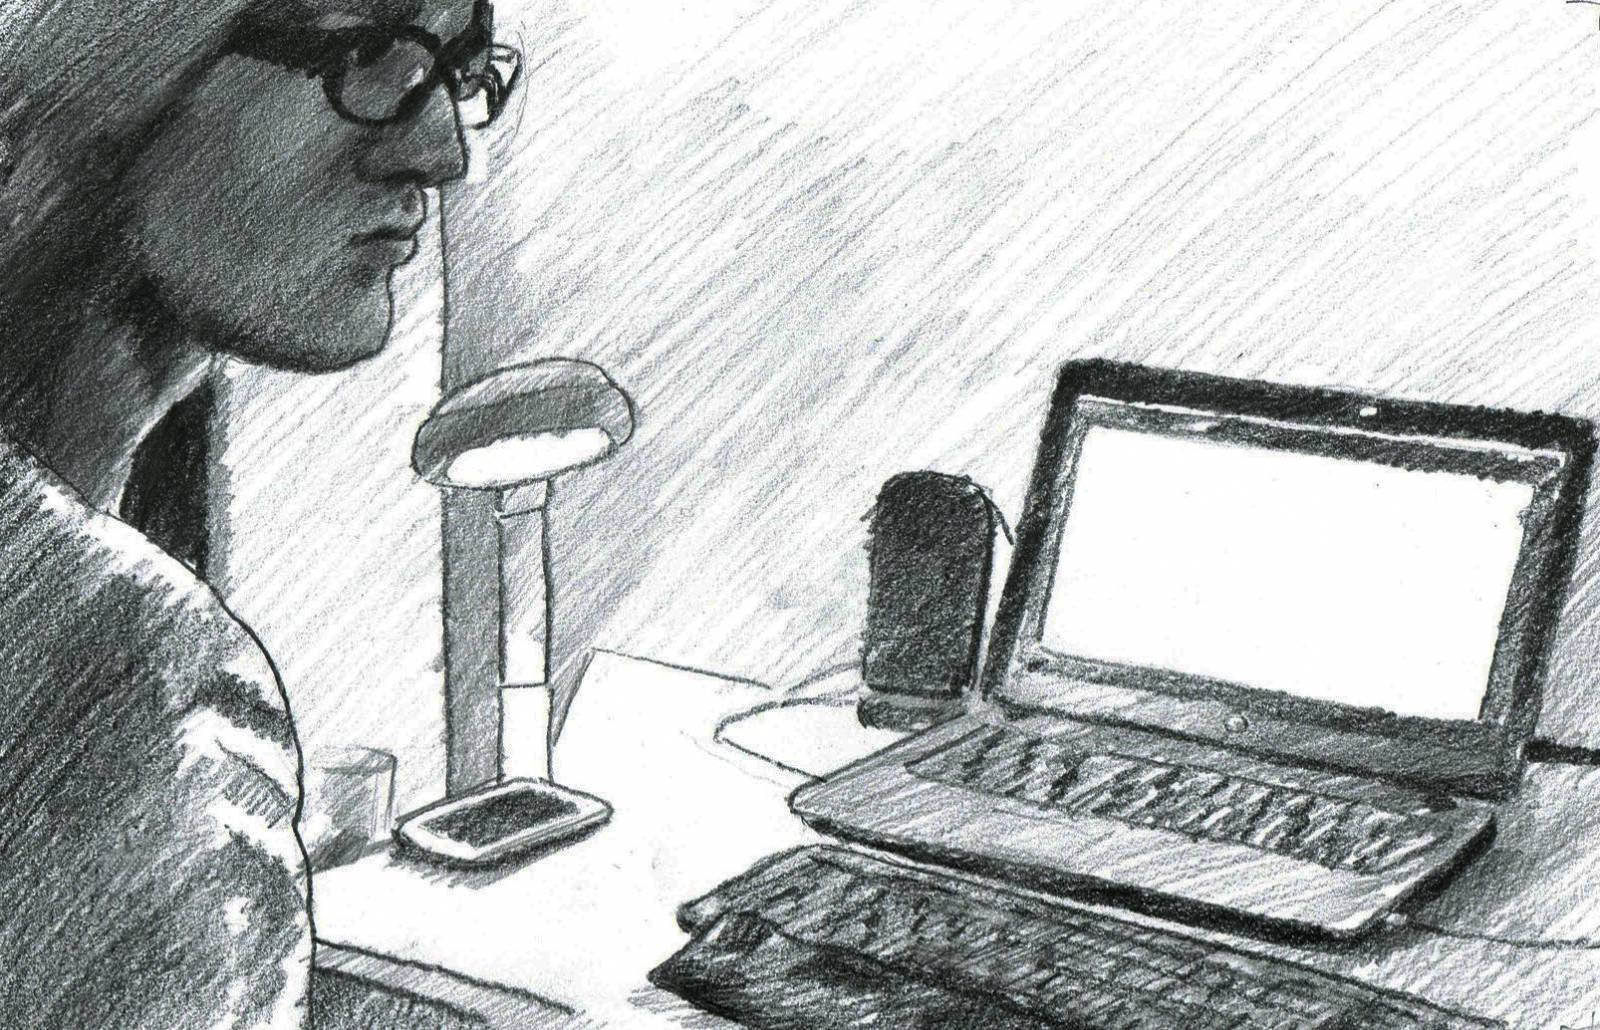 A black-and-white drawing that illustrates an authentic situation of the data collection process for the Mutable corpus. The picture shows a person who is part of a blind-sighted team sitting in front of a laptop. The person is wearing glasses and only part of their face is shown in the picture. Their face is pictured from their right side.